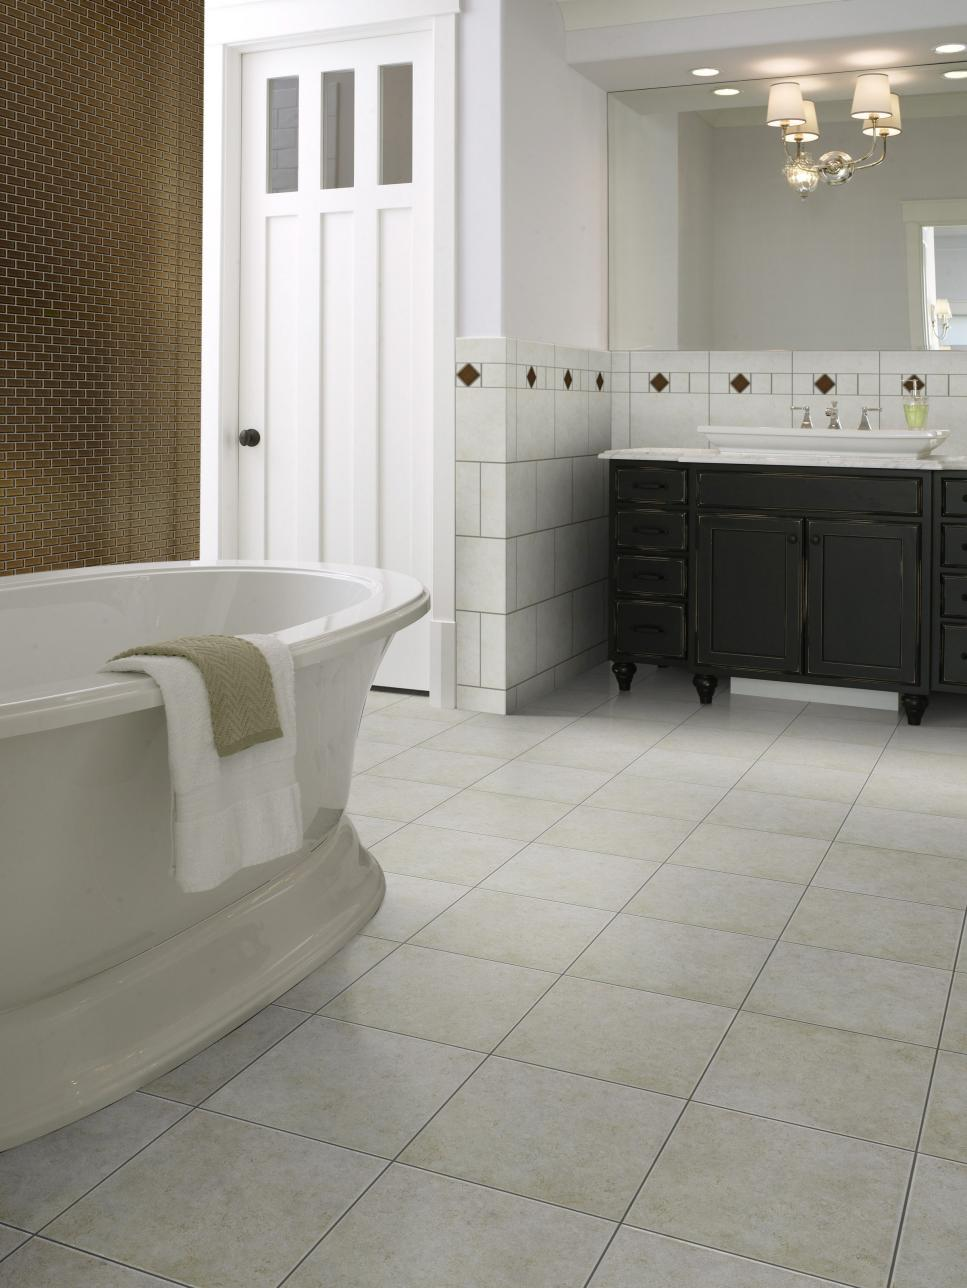 Ceramic tile bathroom floors hgtv intricate tile designs doublecrazyfo Choice Image